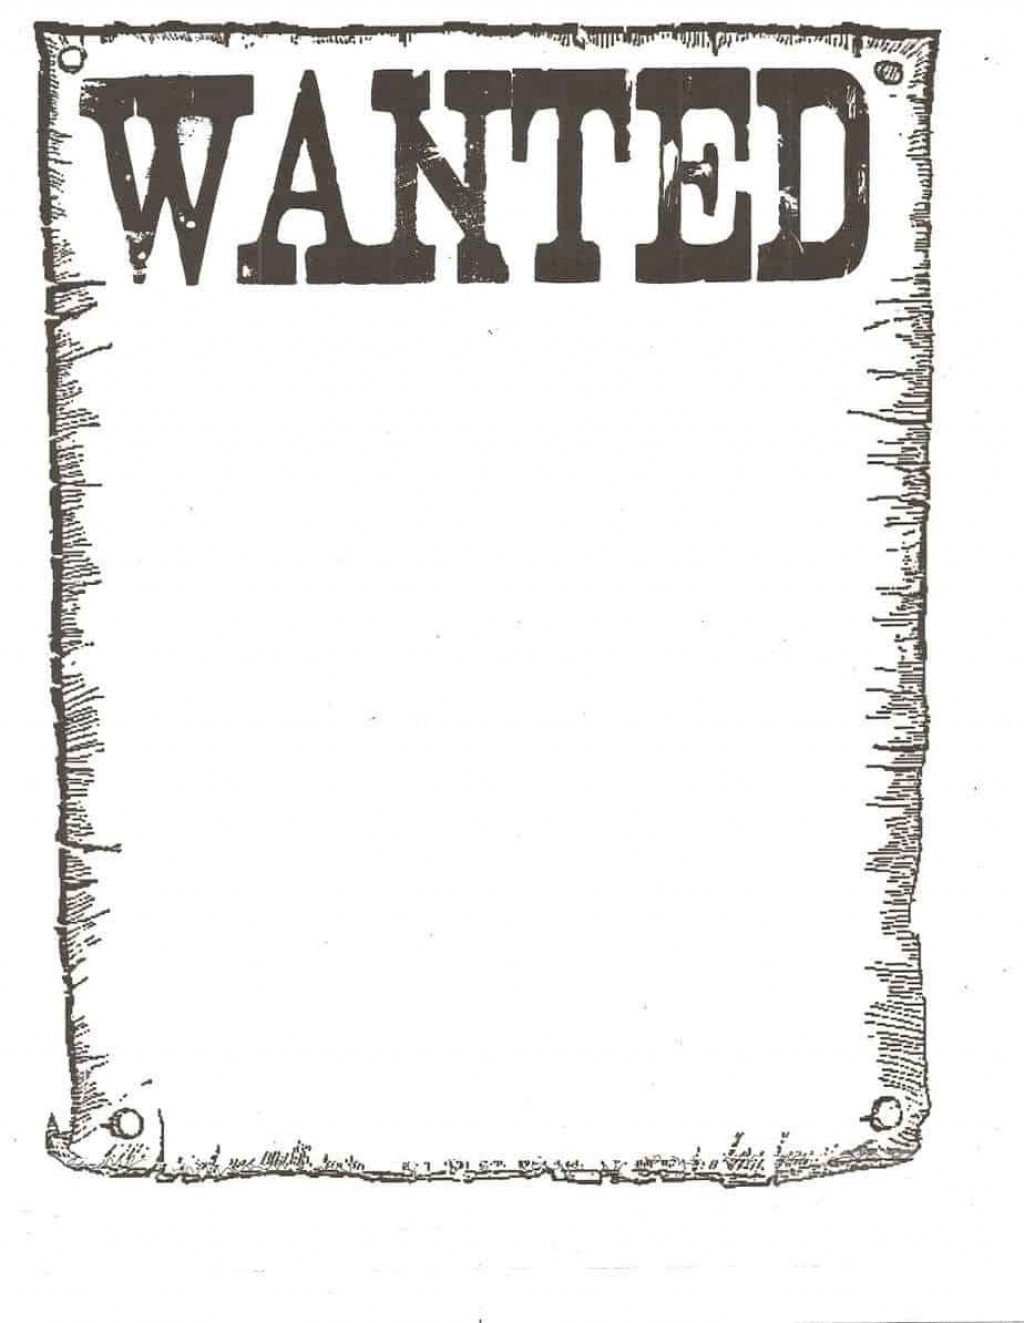 006 Awful Wanted Poster Template Microsoft Word High Resolution  Western MostLarge